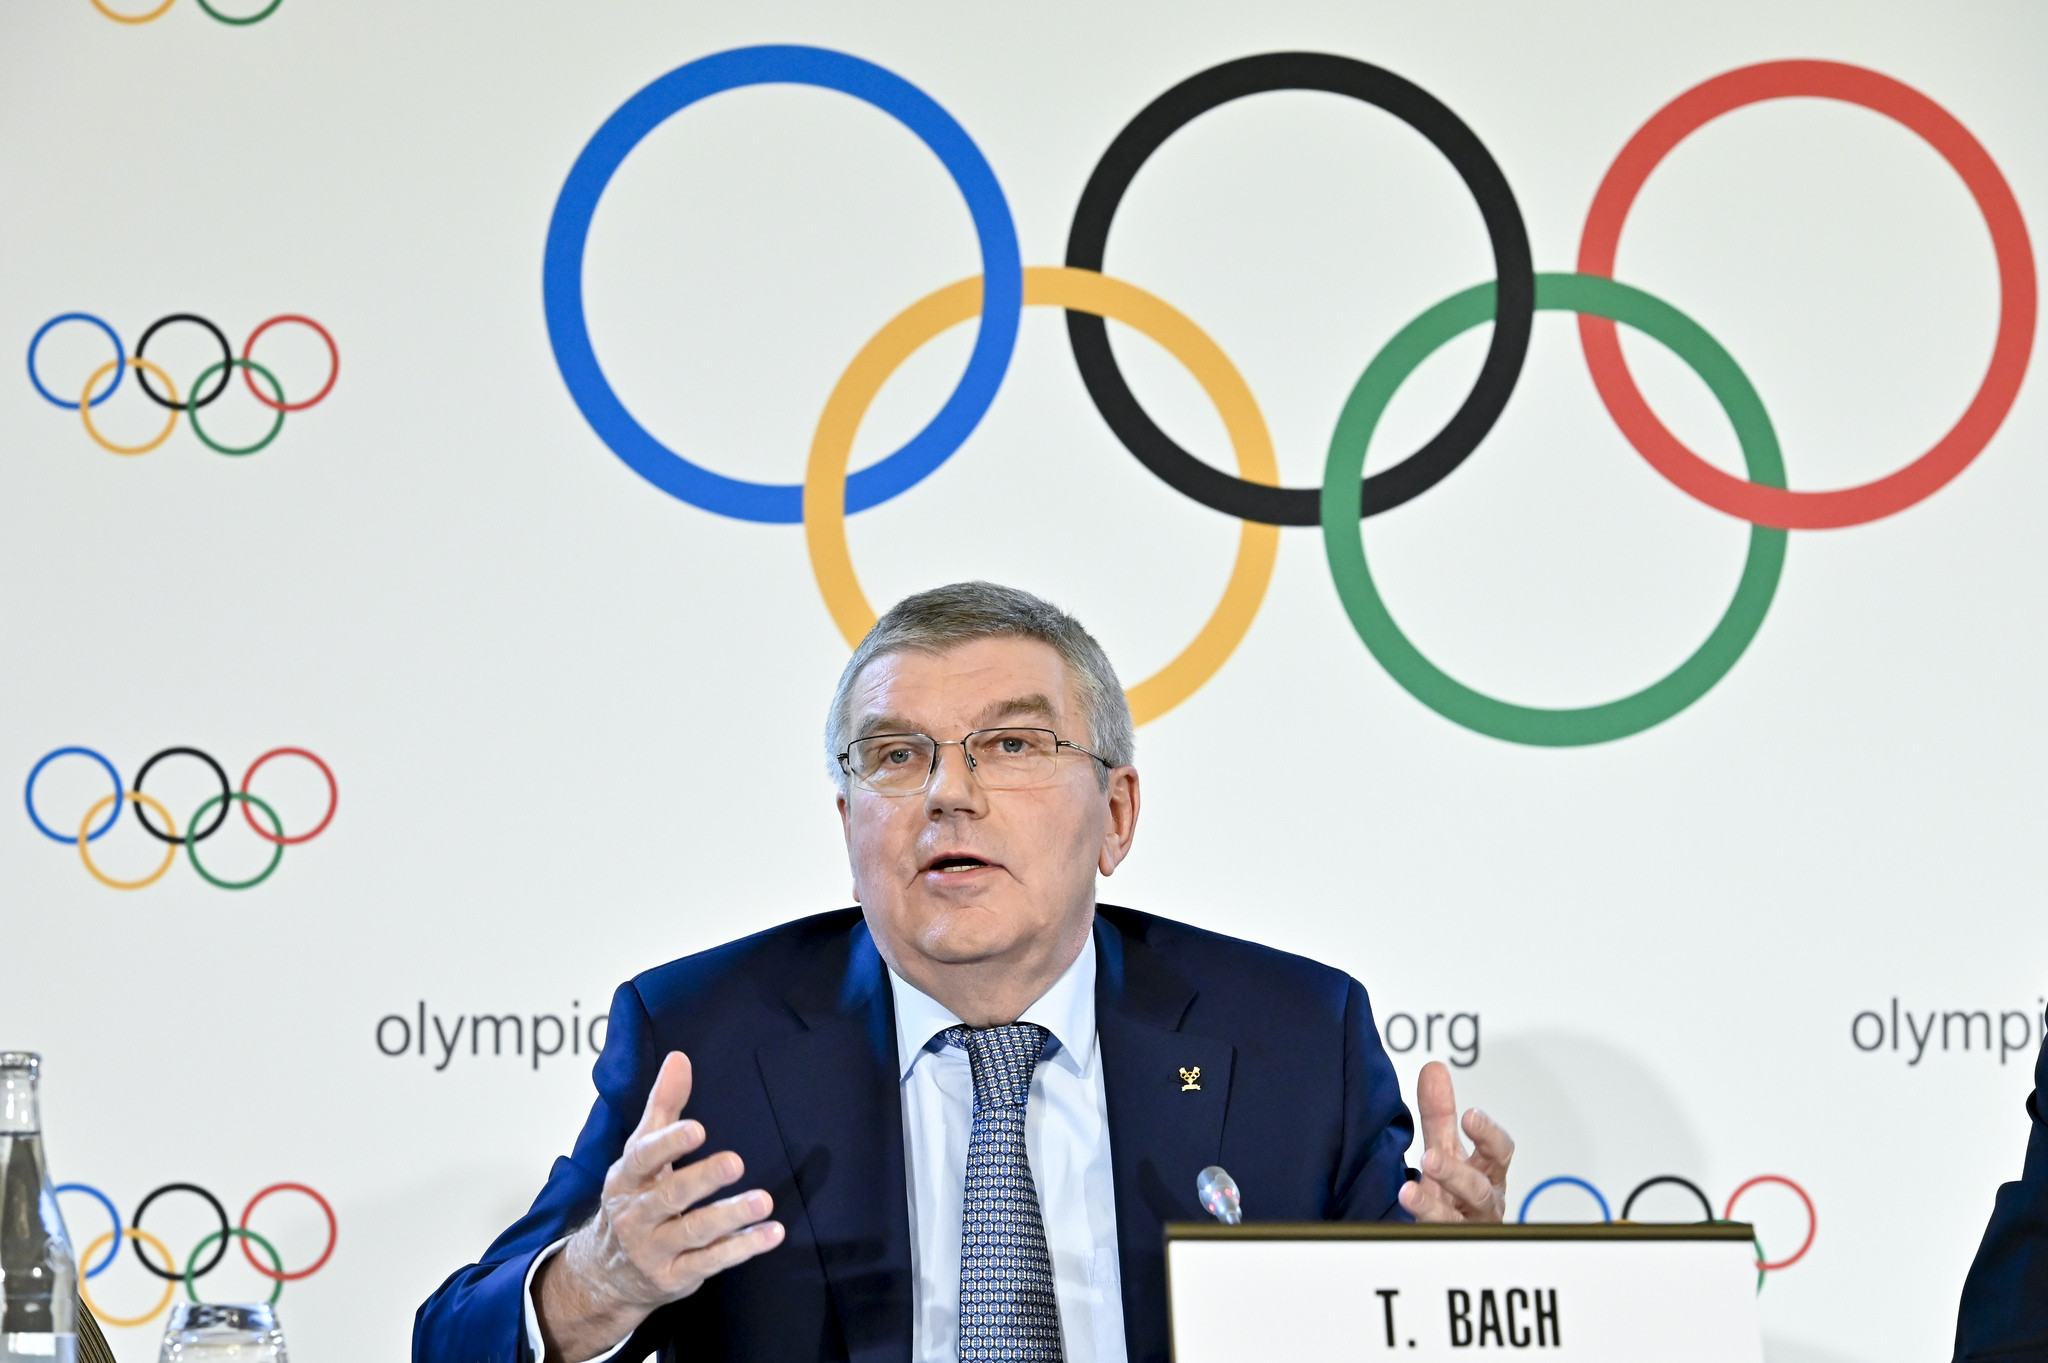 IOC President Thomas Bach has urged authorities investigating an international doping ring to ensure the athletes and support staff involved are met with swift and tough sanctions ©IOC